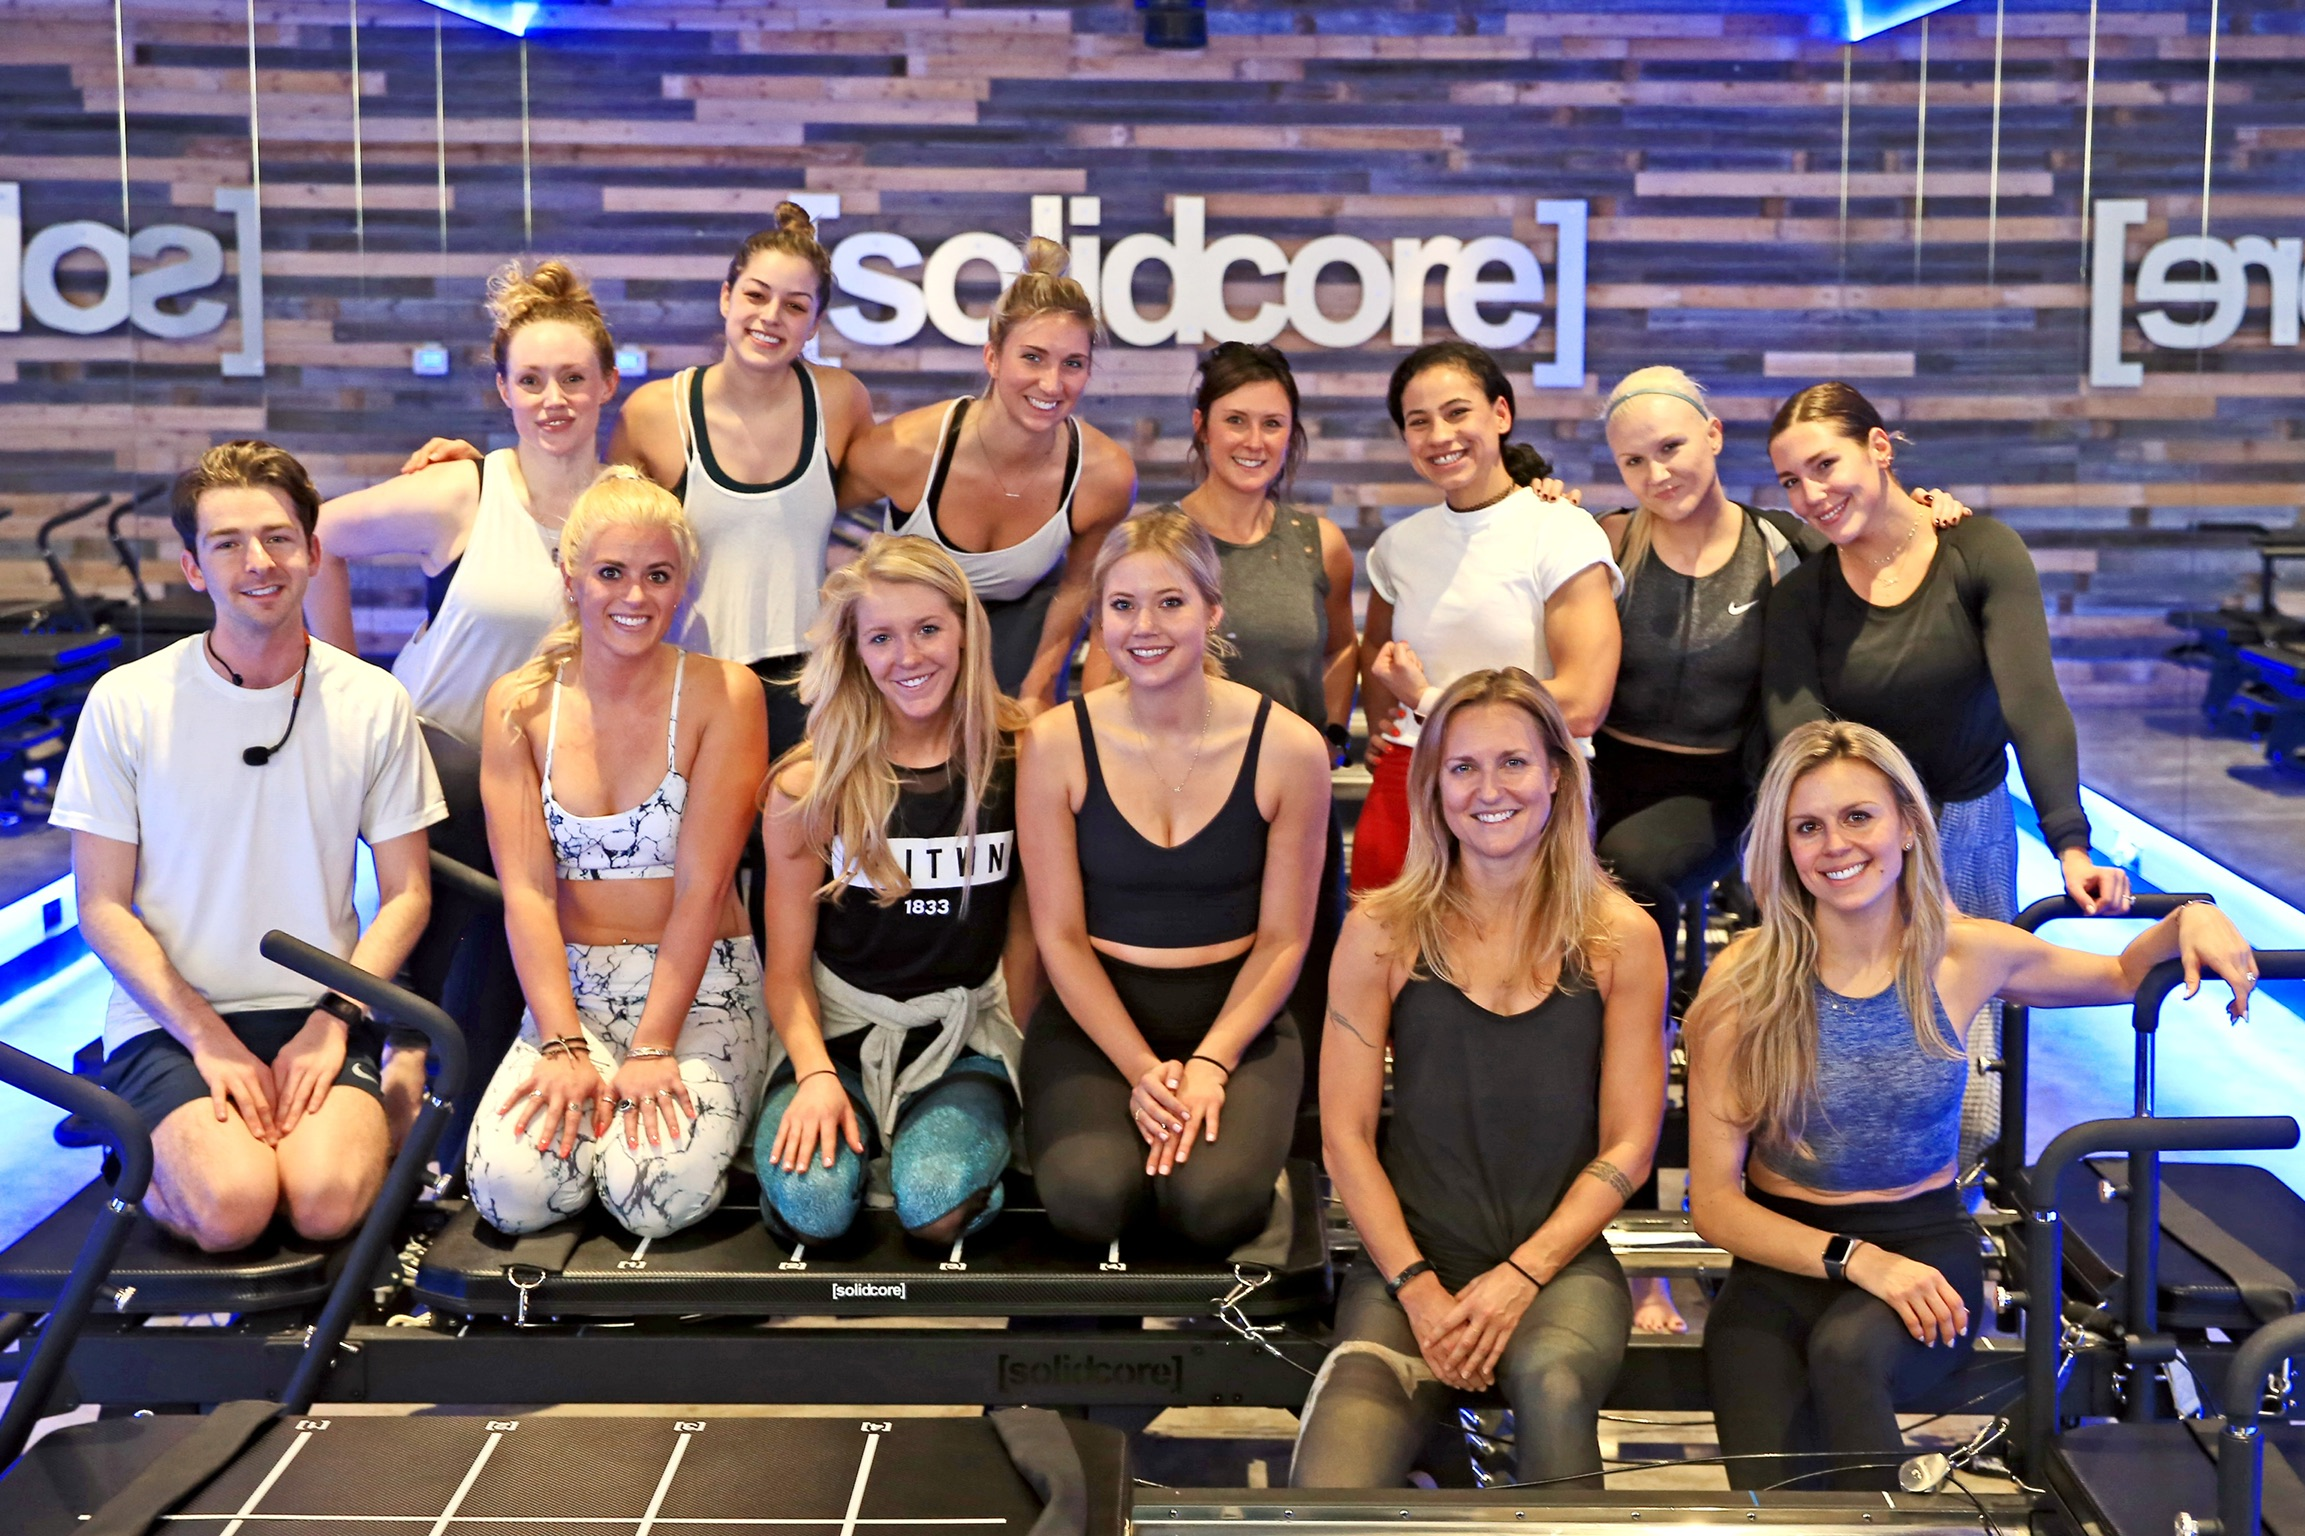 Use code FITCITYBLONDE for a discount on your first 2 classes at  [solidcore]